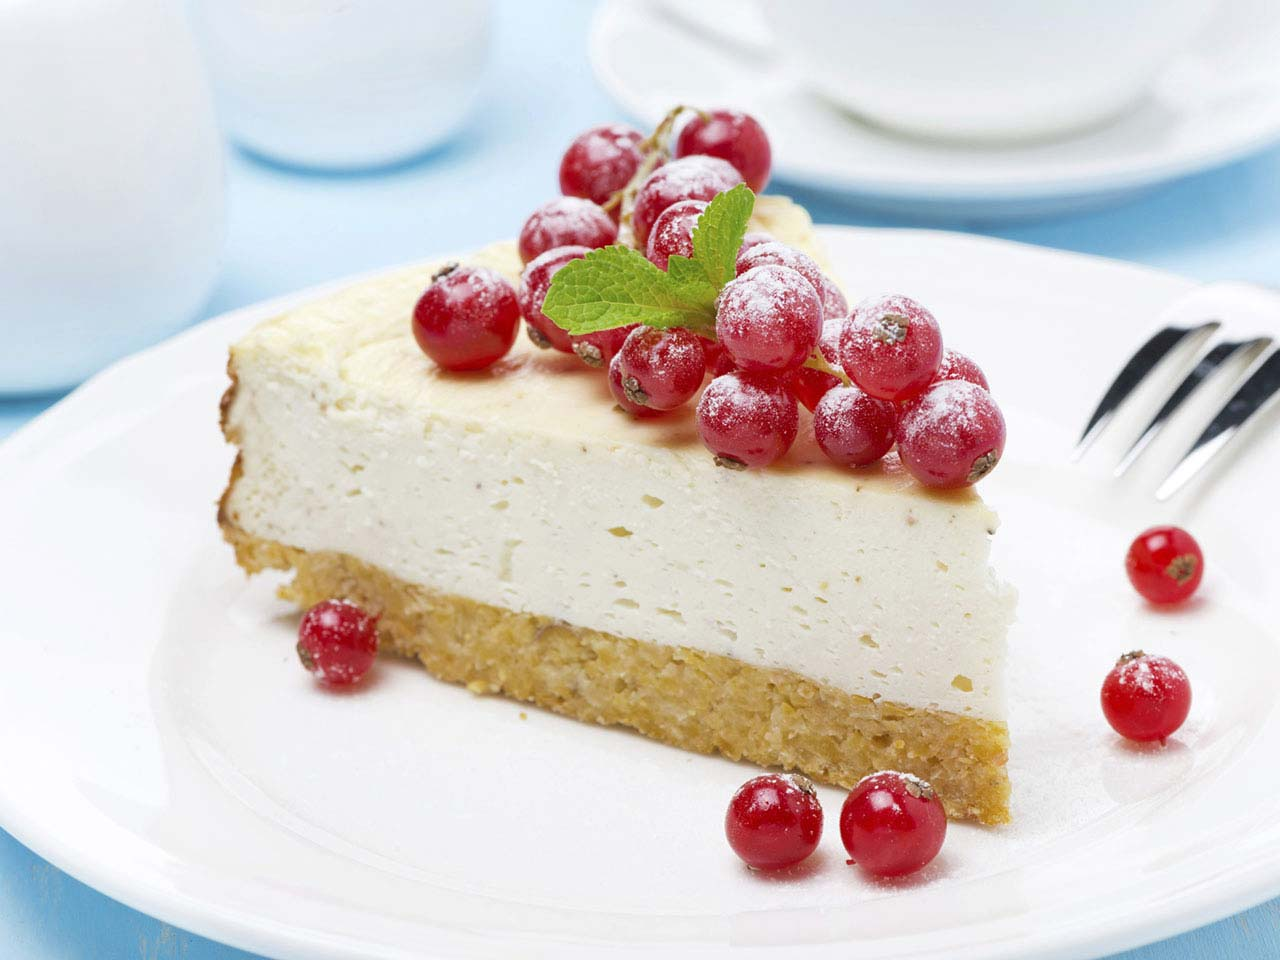 Redcurrant cheesecake on a plate